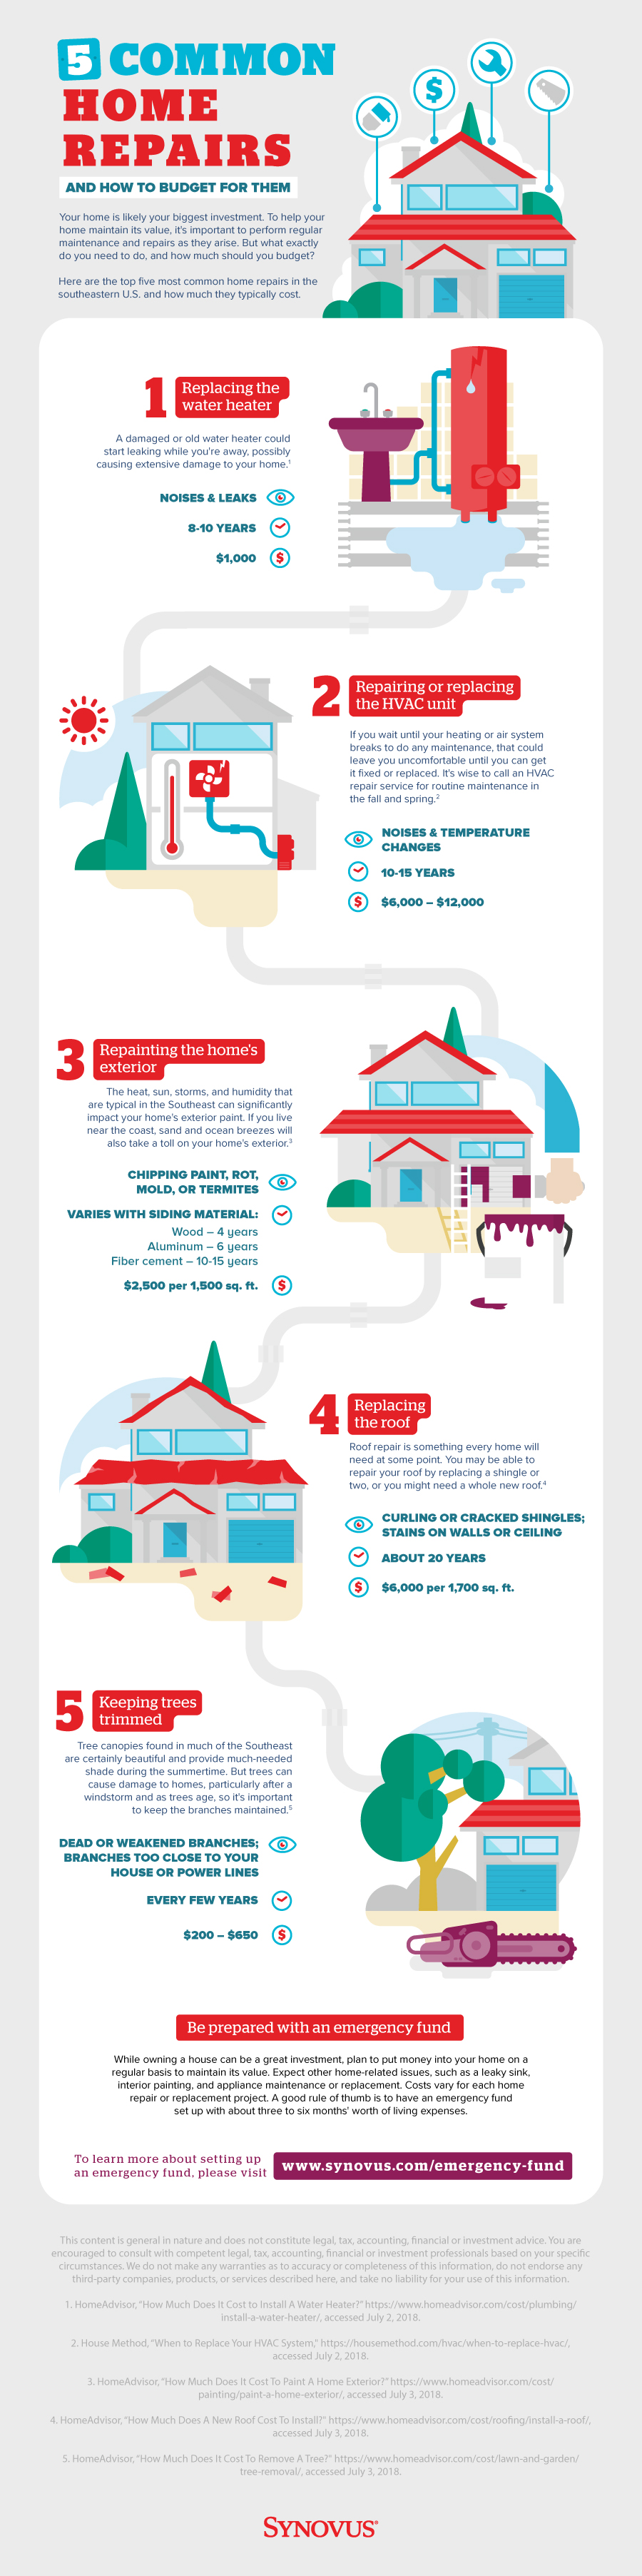 Infographic describing five common home repairs and how to budget for them. A full description is available through a link beneath the image.